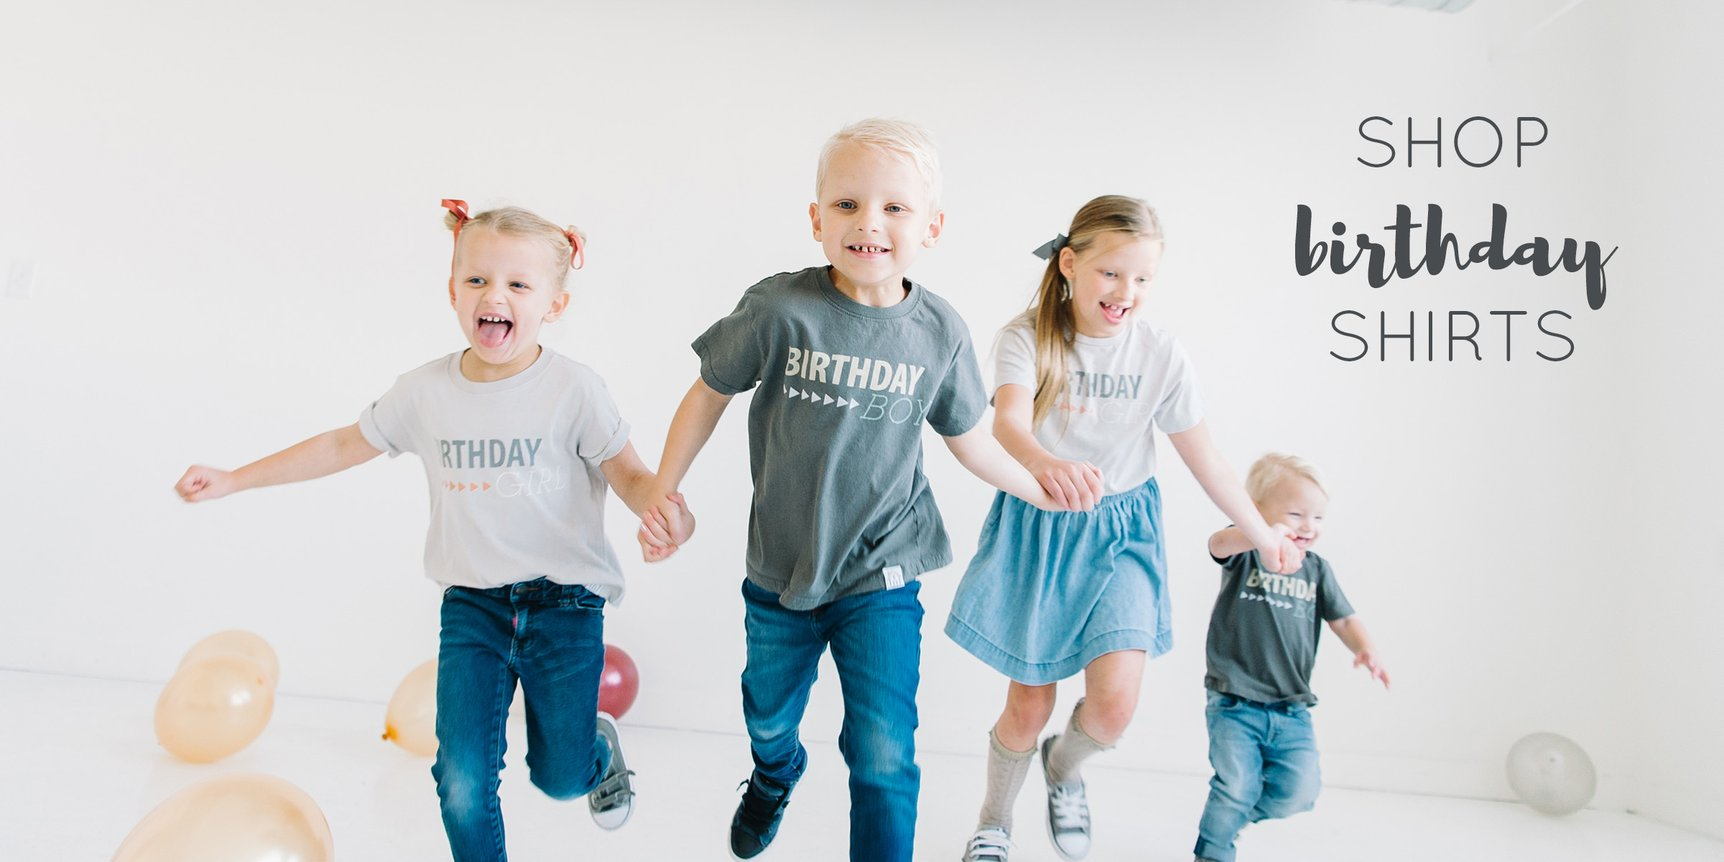 Kids Birthday Shirts